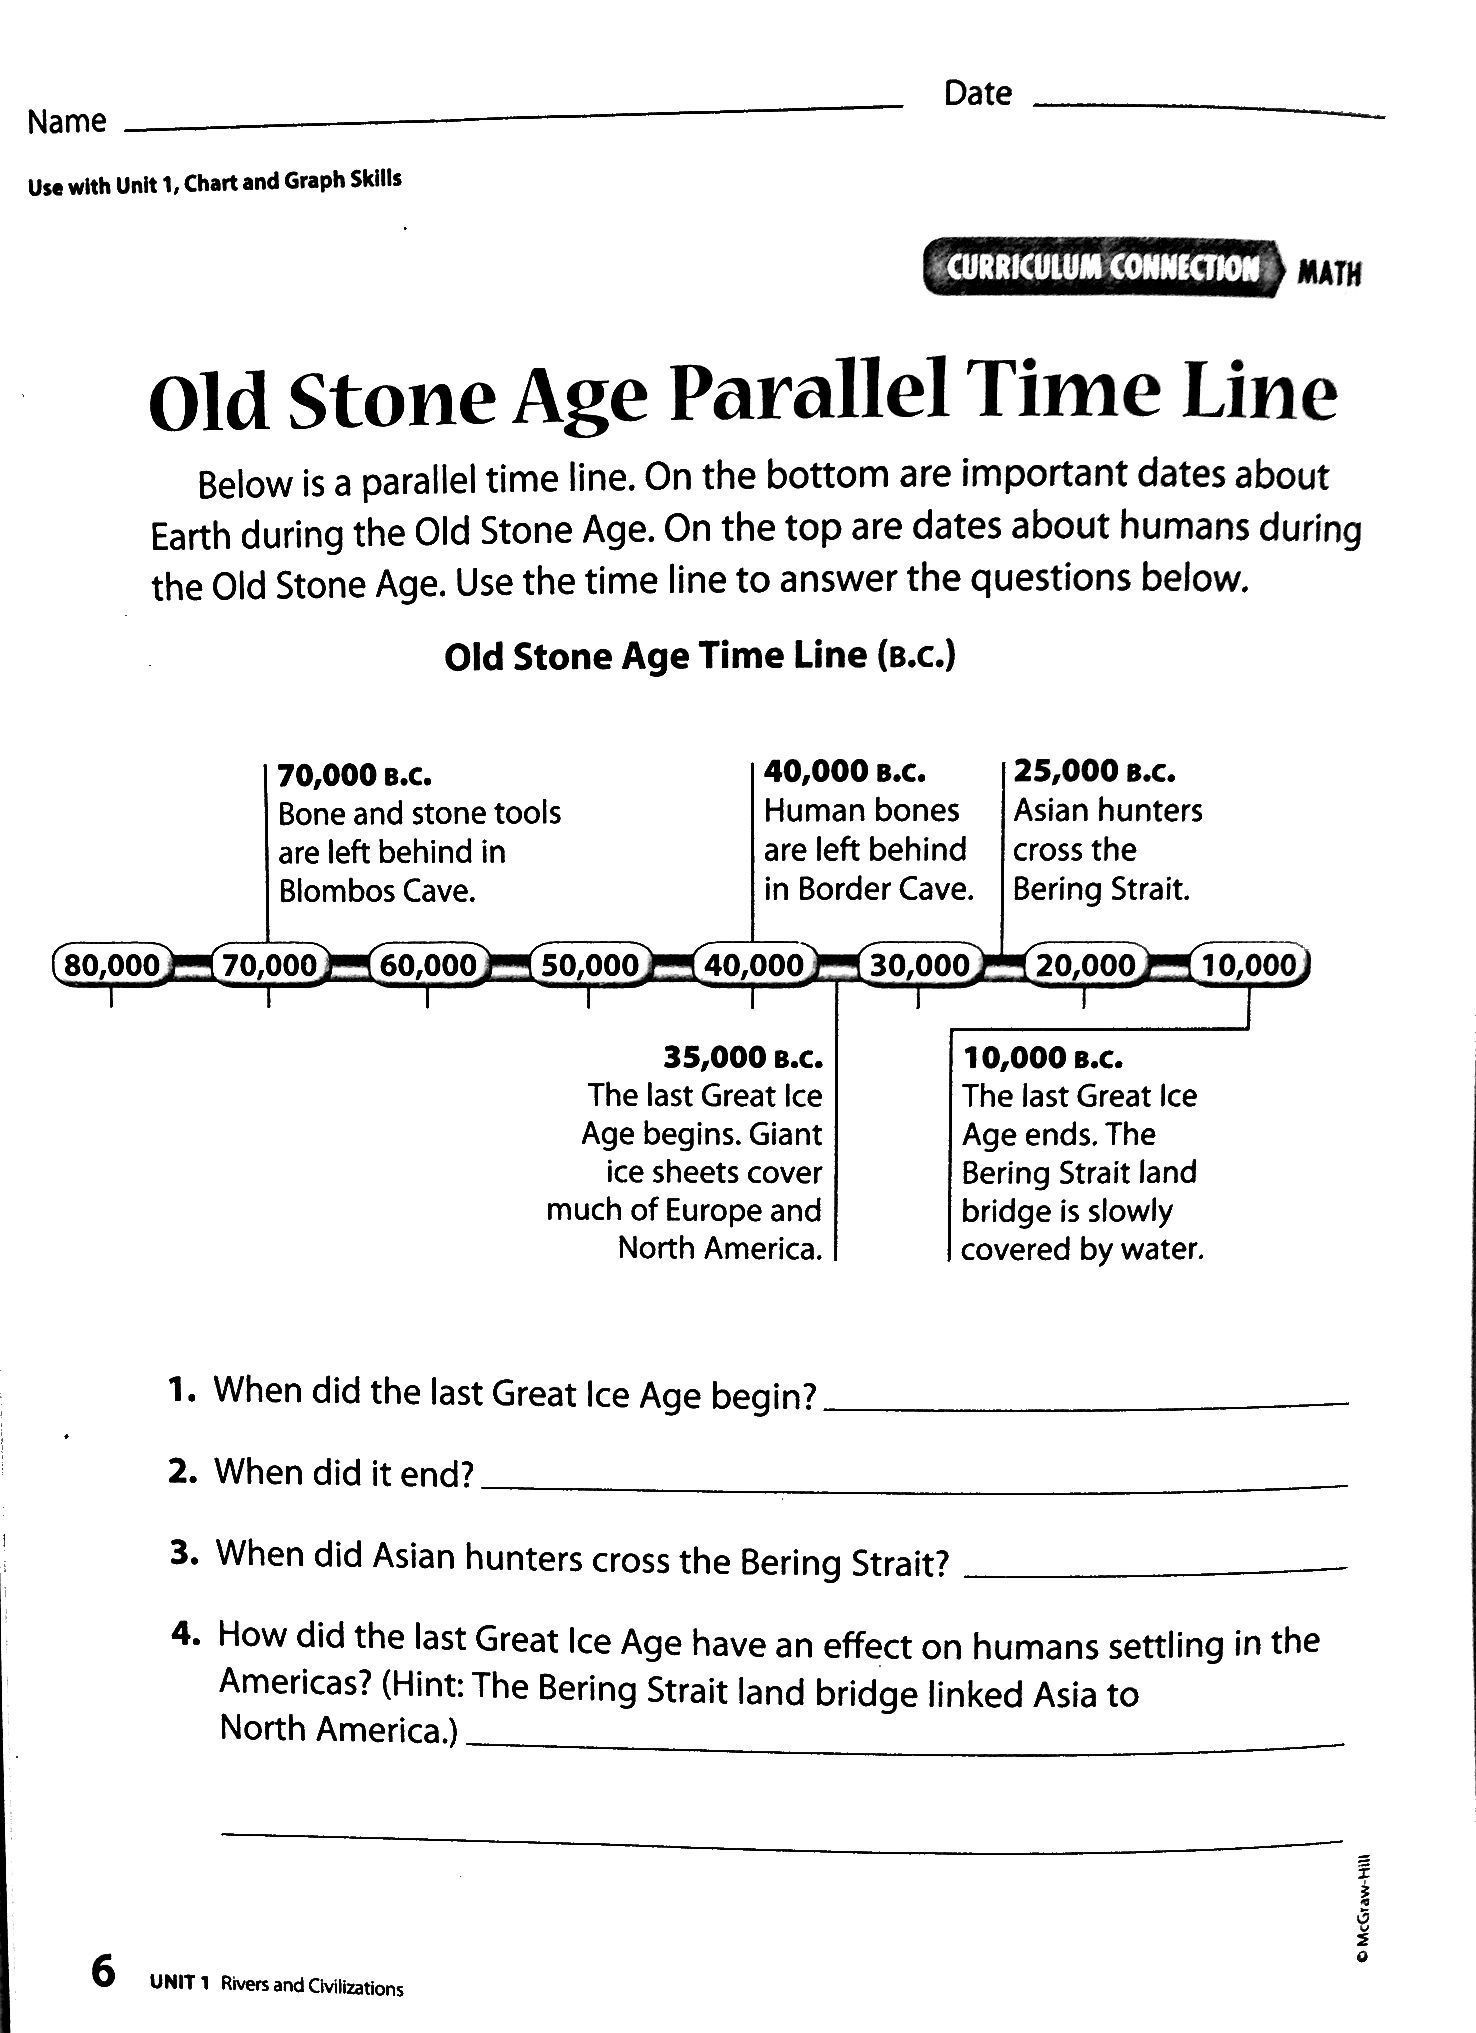 Middle Ages Worksheets 6th Grade Old Stone Age Parallel Time Line 1 476—2 033 Pixels